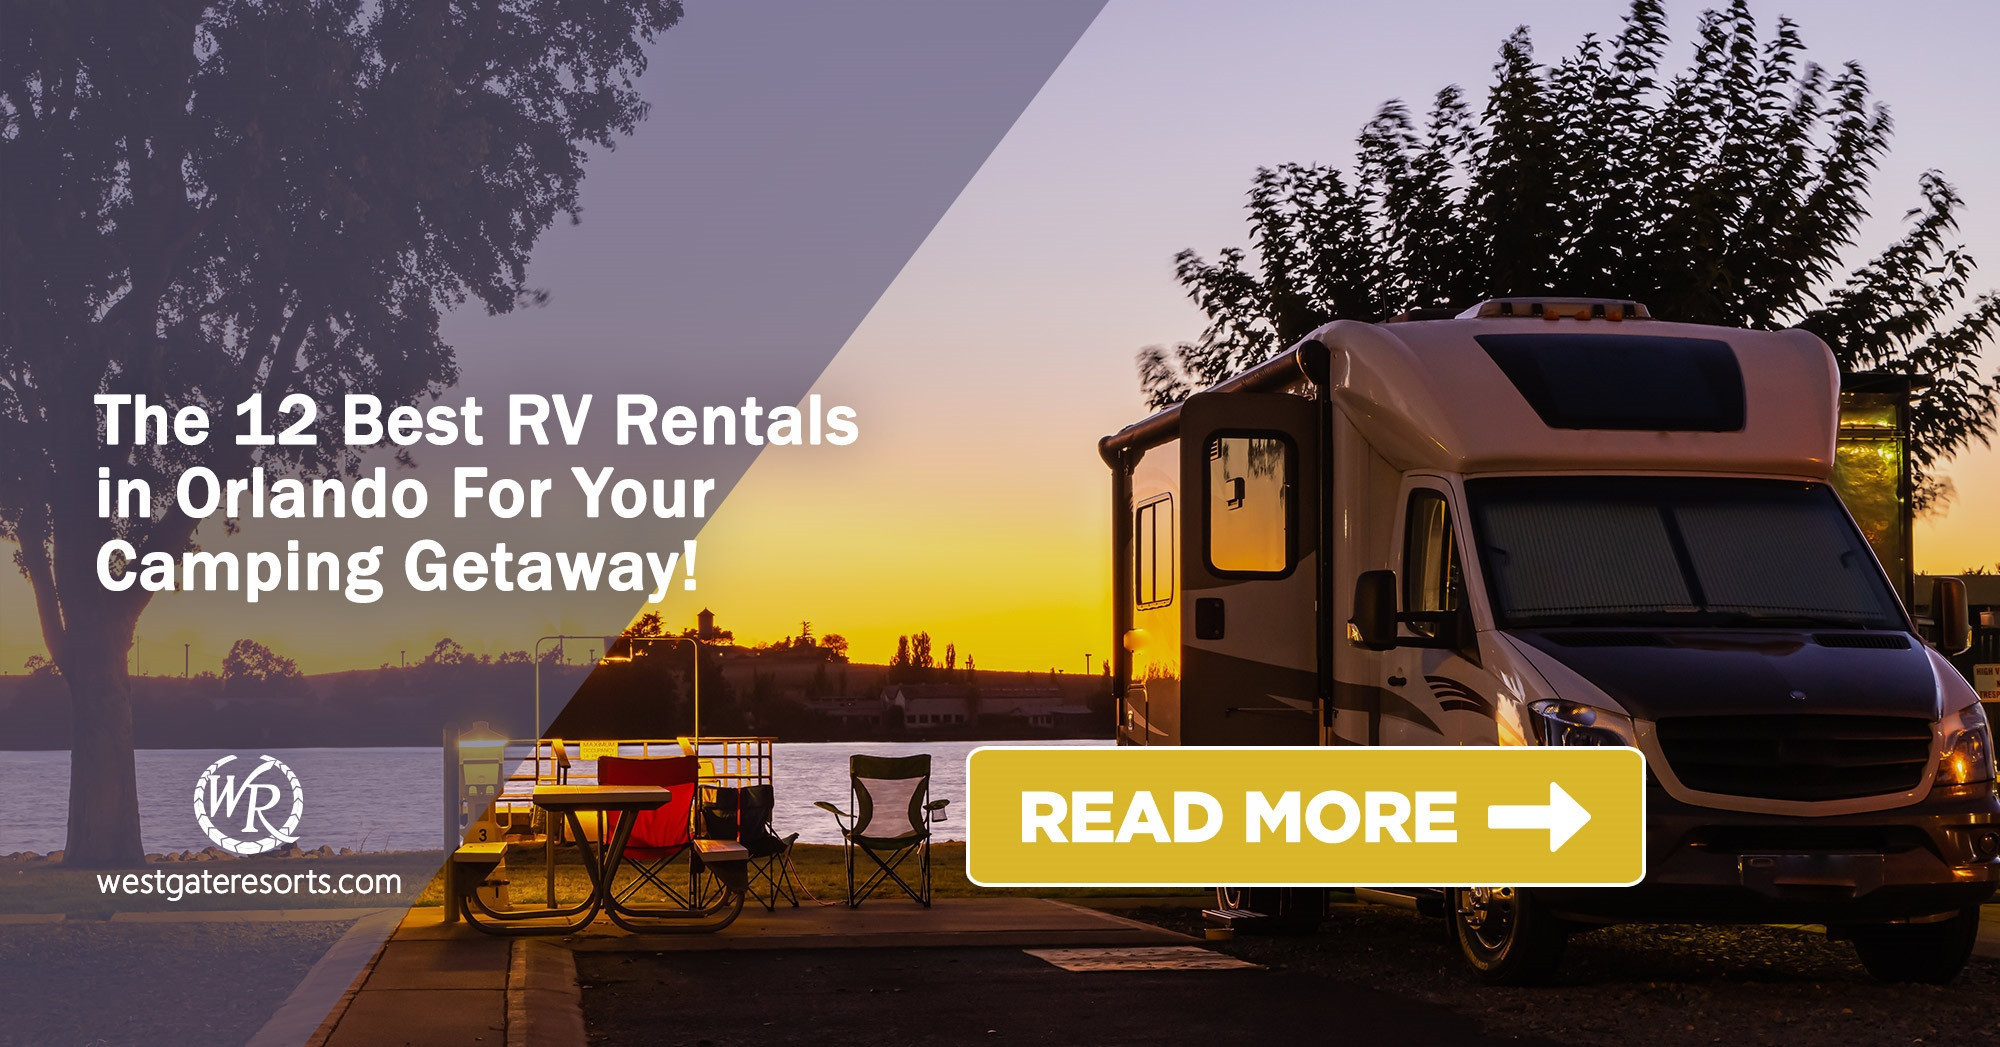 The 12 Best RV Rentals in Orlando For Your Camping Getaway!!